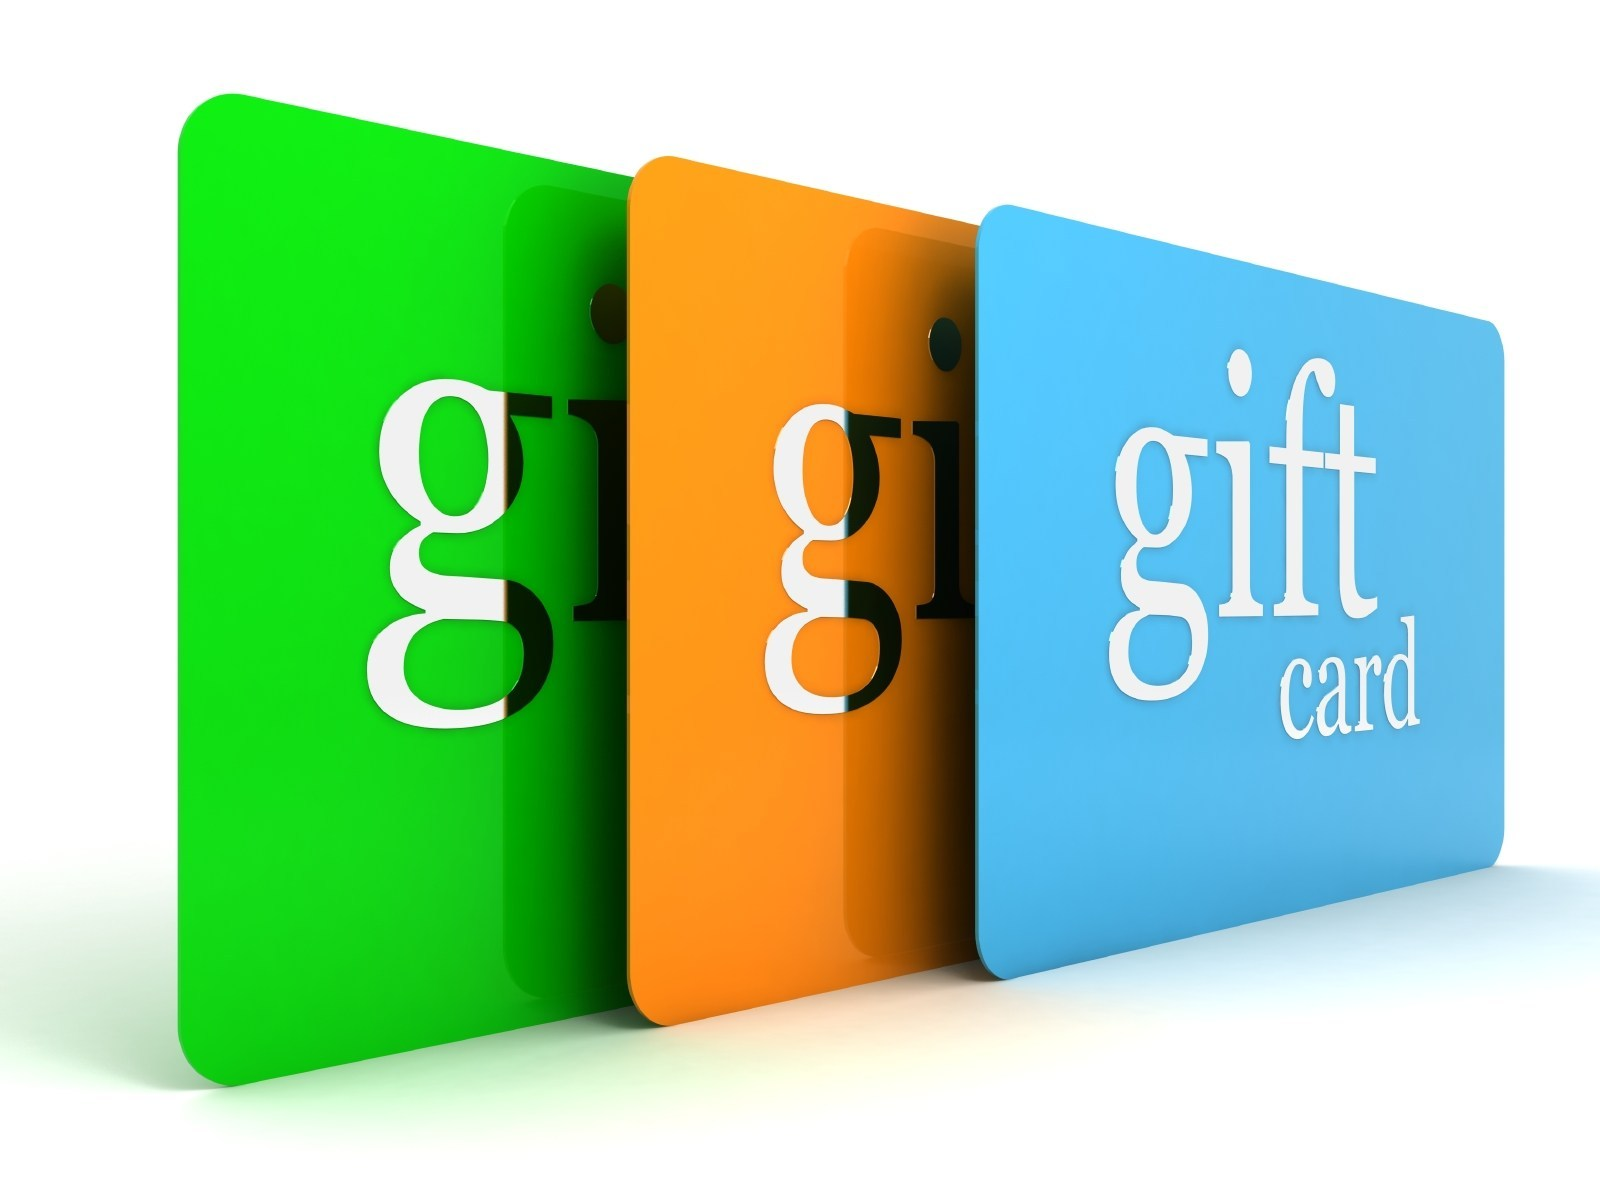 Last minute shopping with gift cards choicecards17 its my choice card details 1betcityfo Gallery